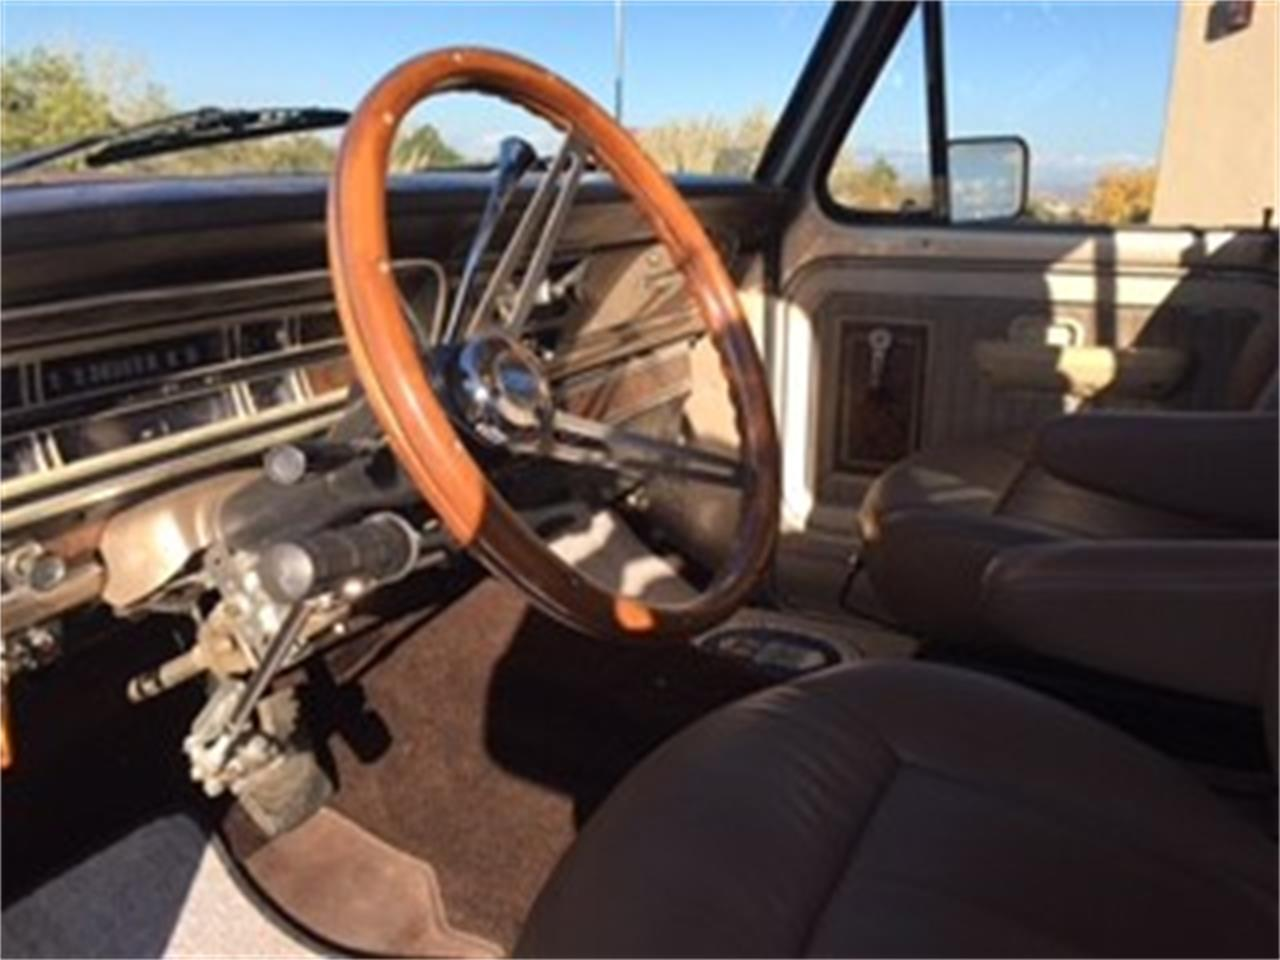 Large Picture of 1972 Ford F250 located in Ohio - $24,000.00 Offered by a Private Seller - LF68